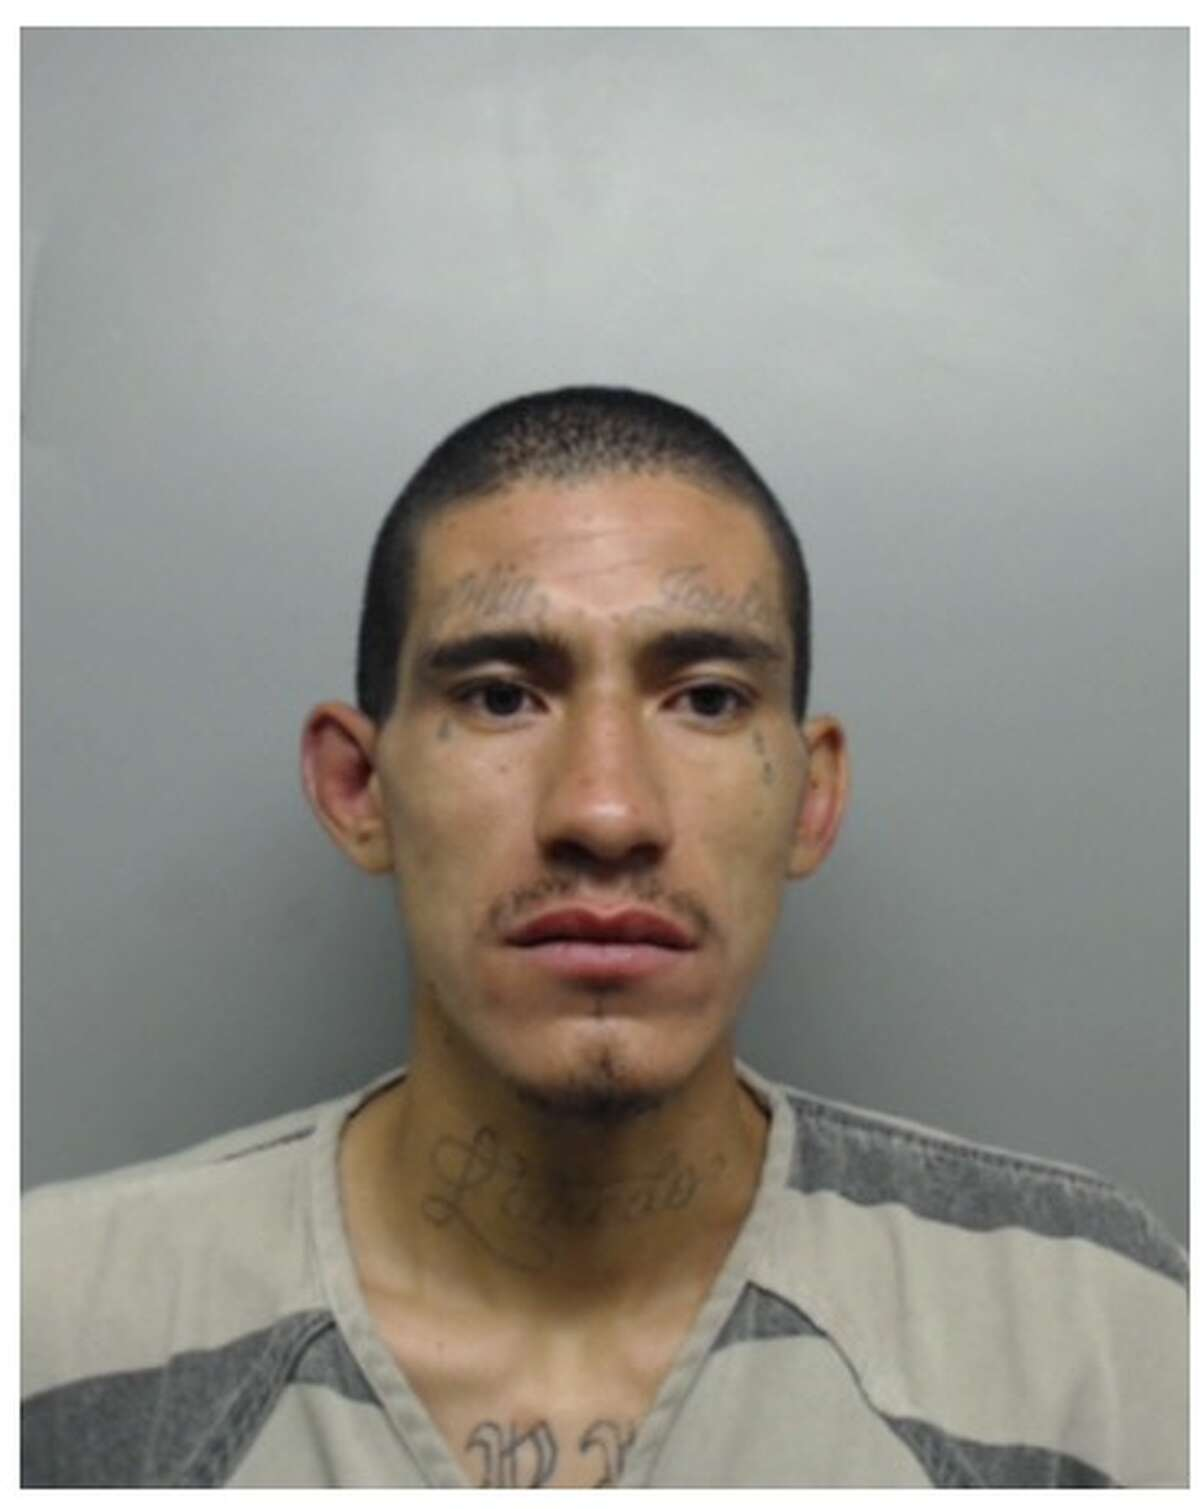 Jose Guadalupe Torres, 26, was served with 12 active warrants for his arrest.